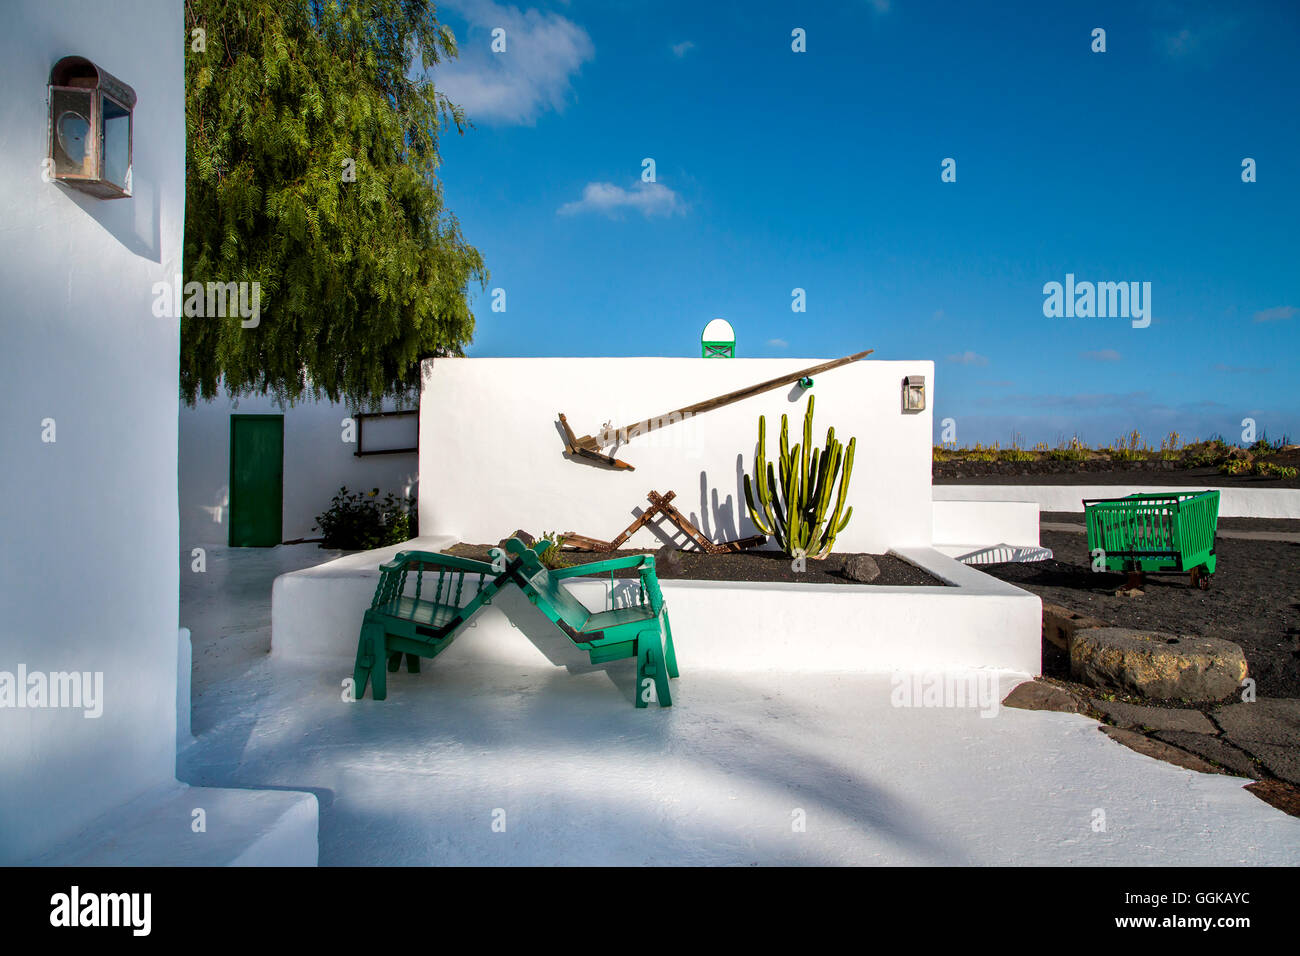 Basket for camels, Museo del Campesino, Monumento al Campesino, Lanzarote, Canary Islands, Spain - Stock Image